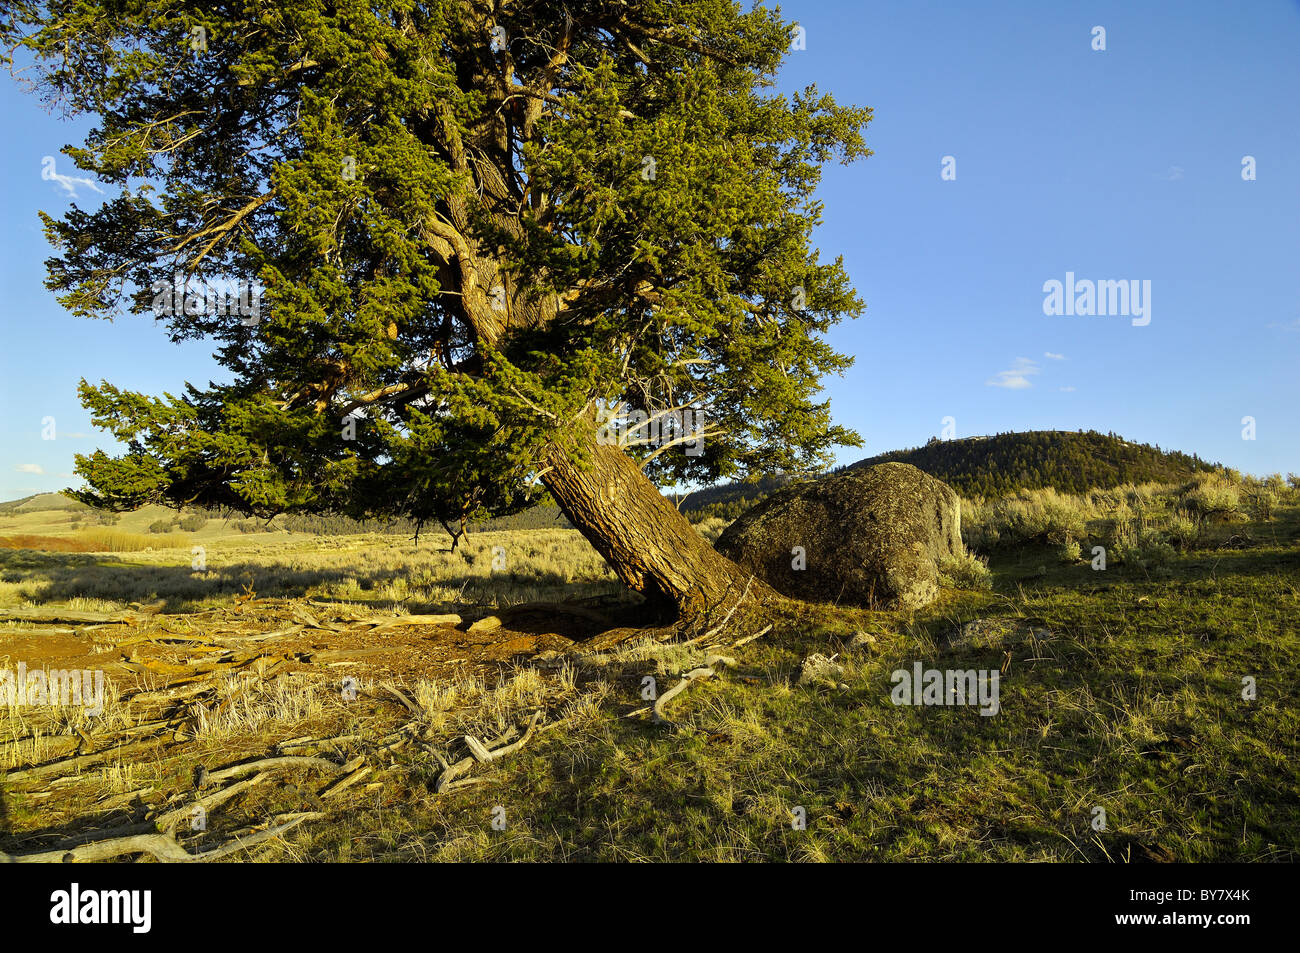 Spectacular old-growth Douglas Fir tree in Yellowstone National Park - Stock Image